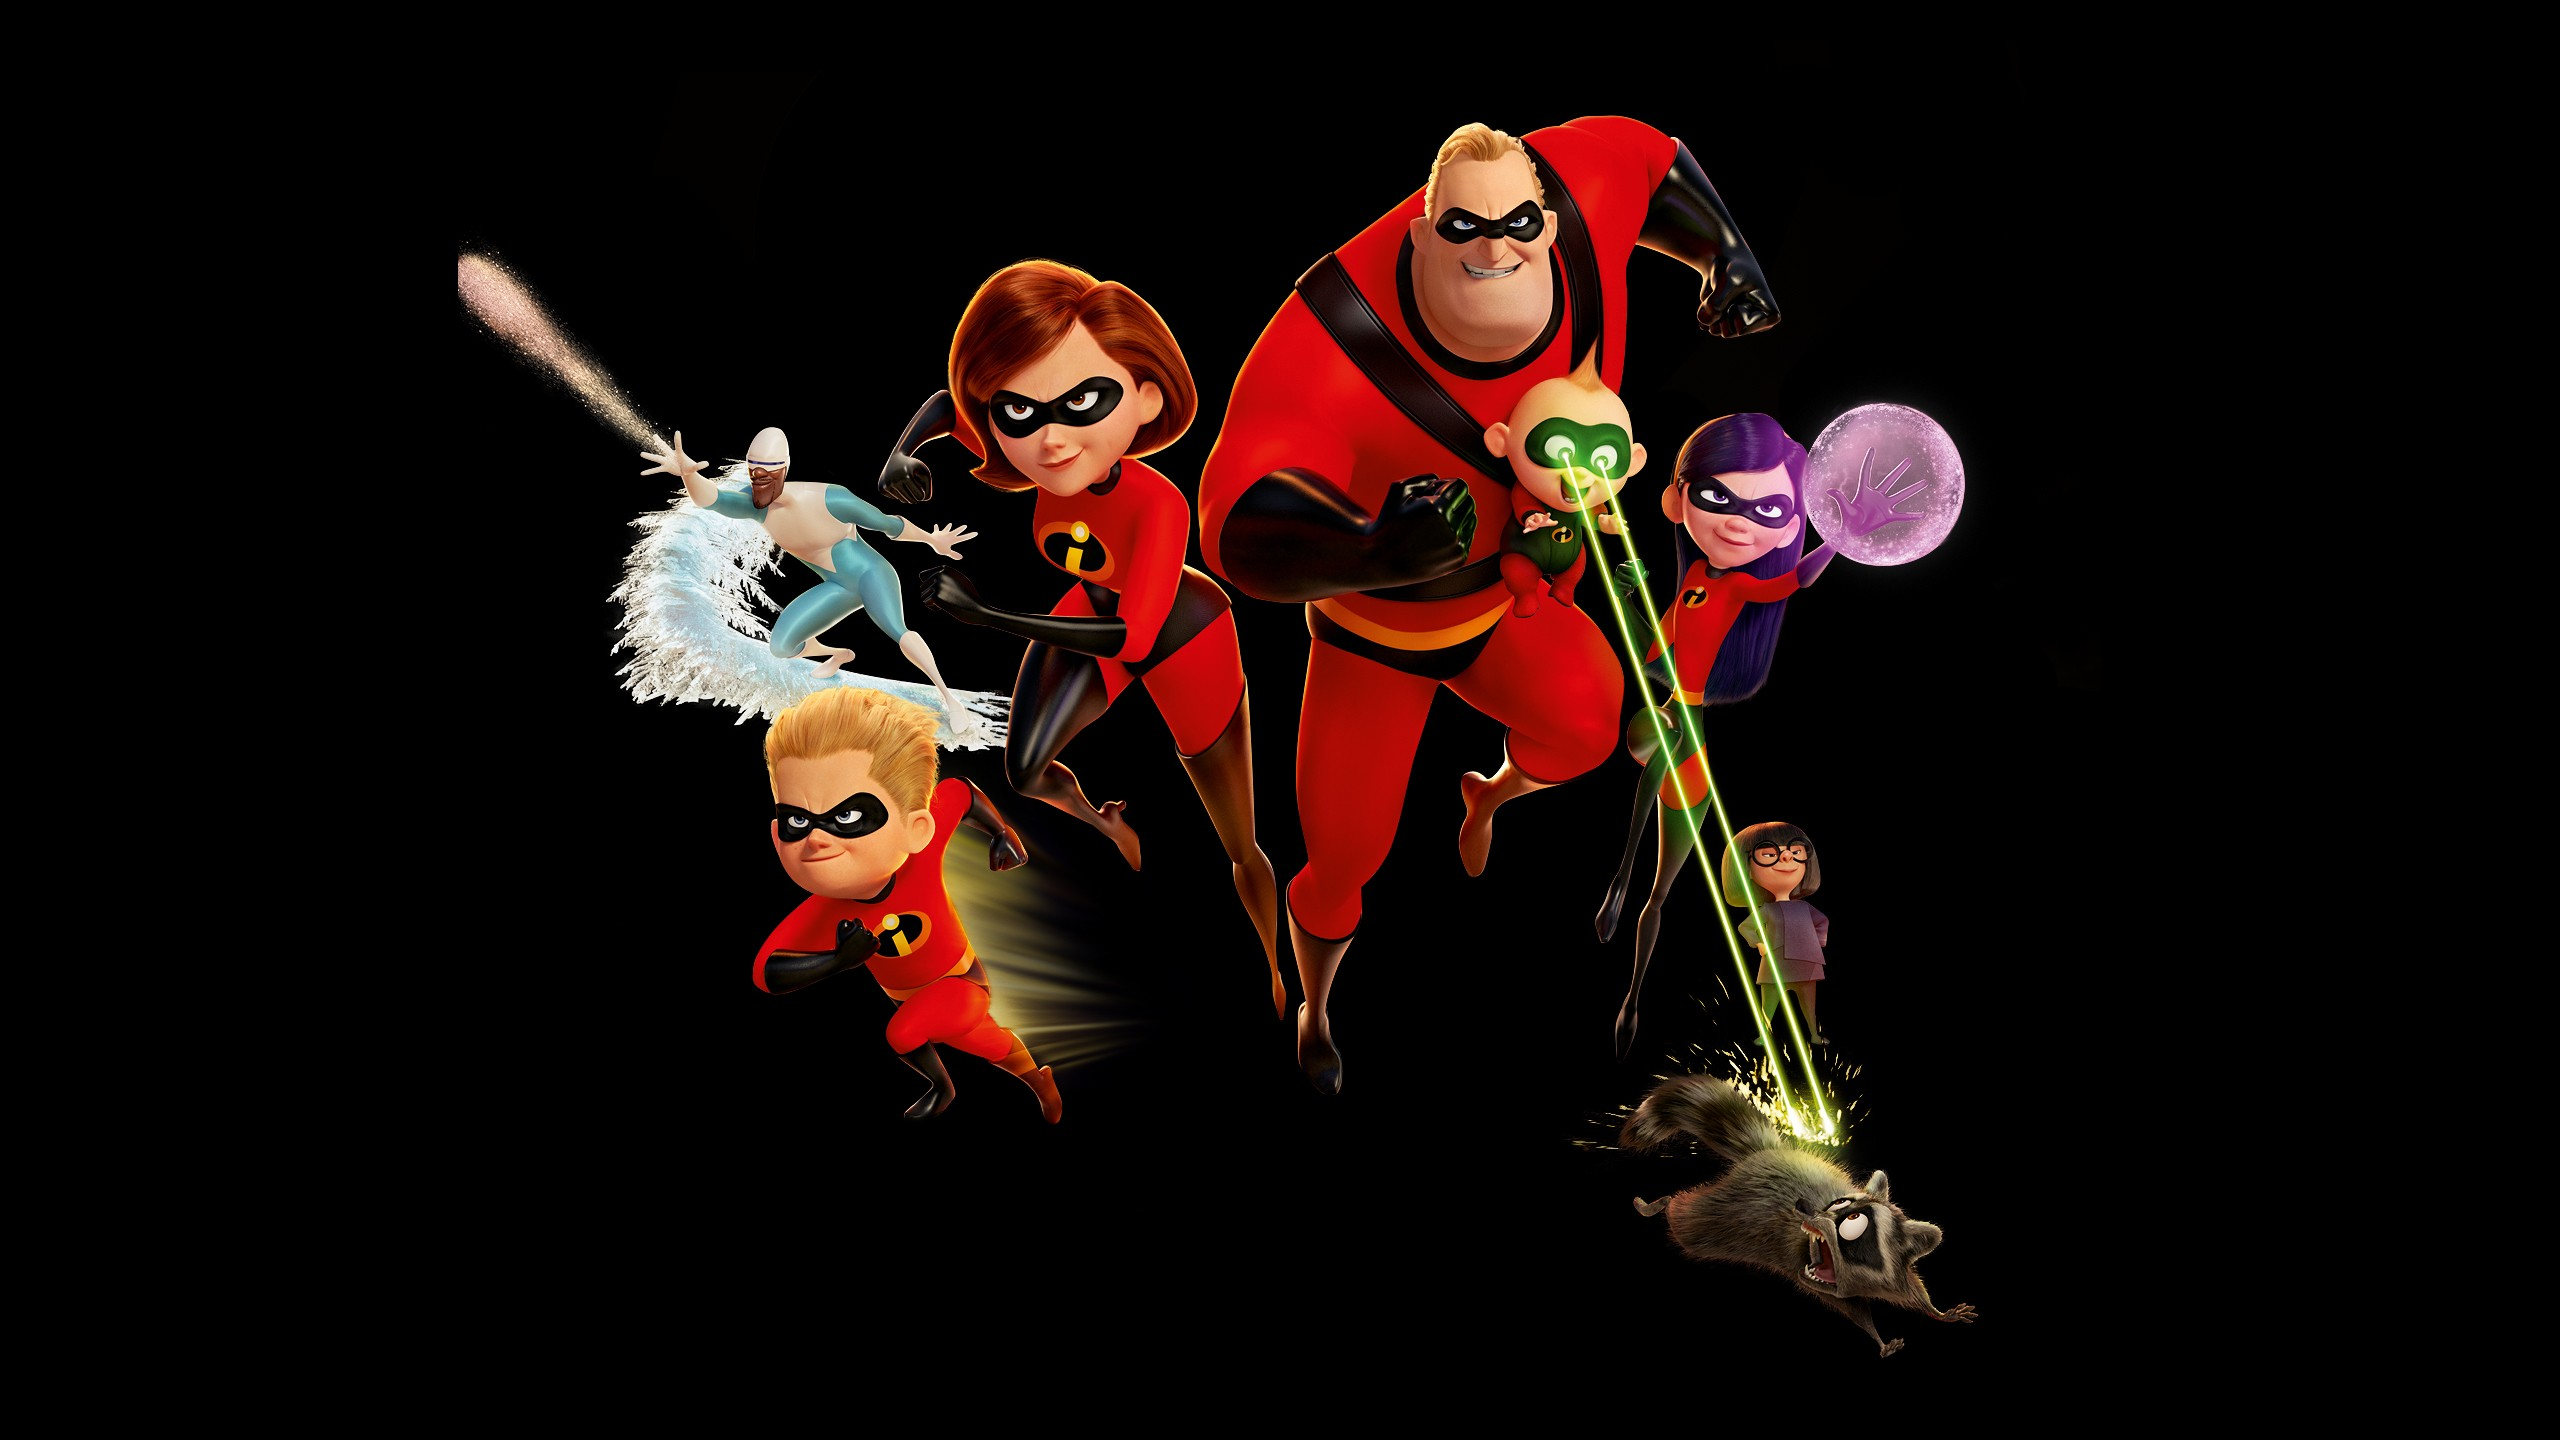 Sick Wallpapers For Iphone 5 Incredibles 2 2018 Wallpapers Hd Wallpapers Id 23684